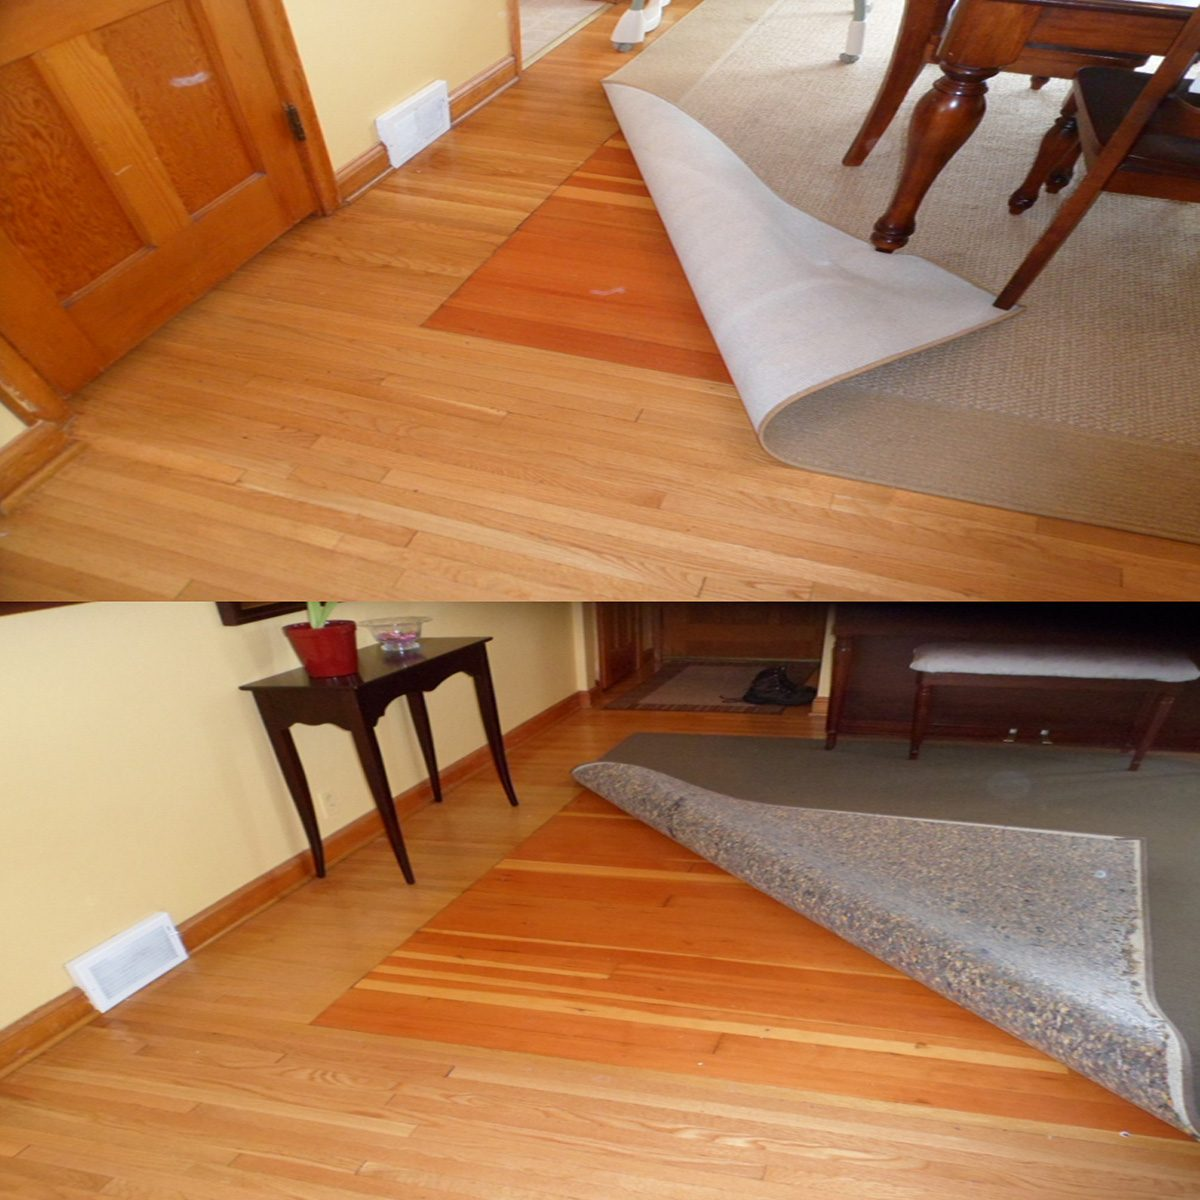 Different colored flooring hidden under a rug | Construction Pro Tips